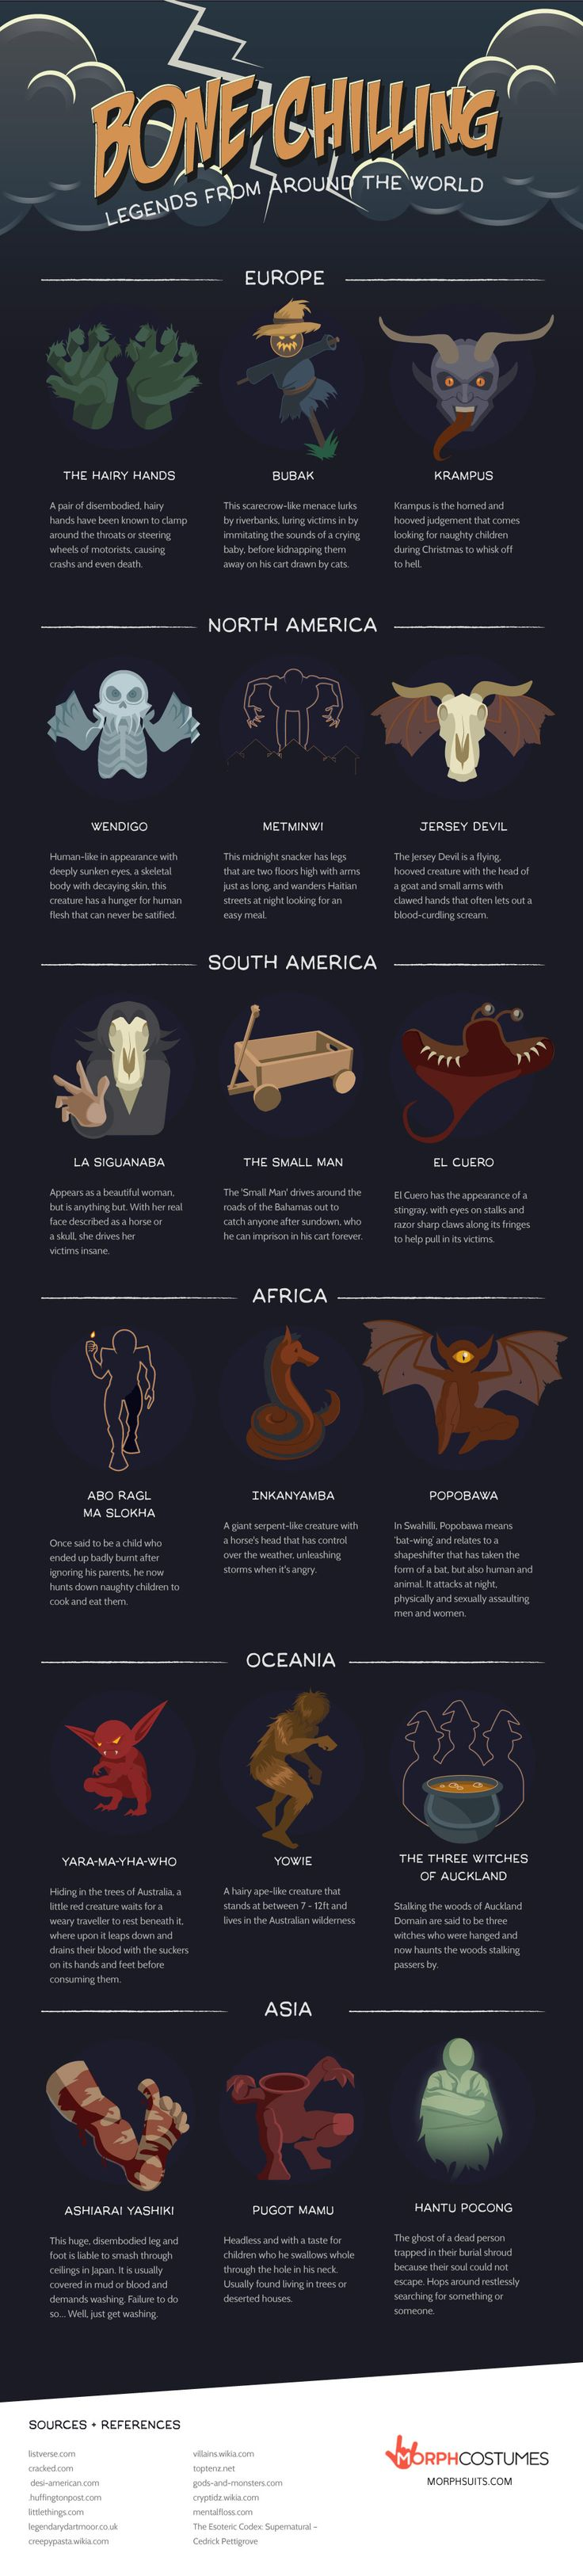 Bone-chilling Legends from Around the World #infographic #Entertainment